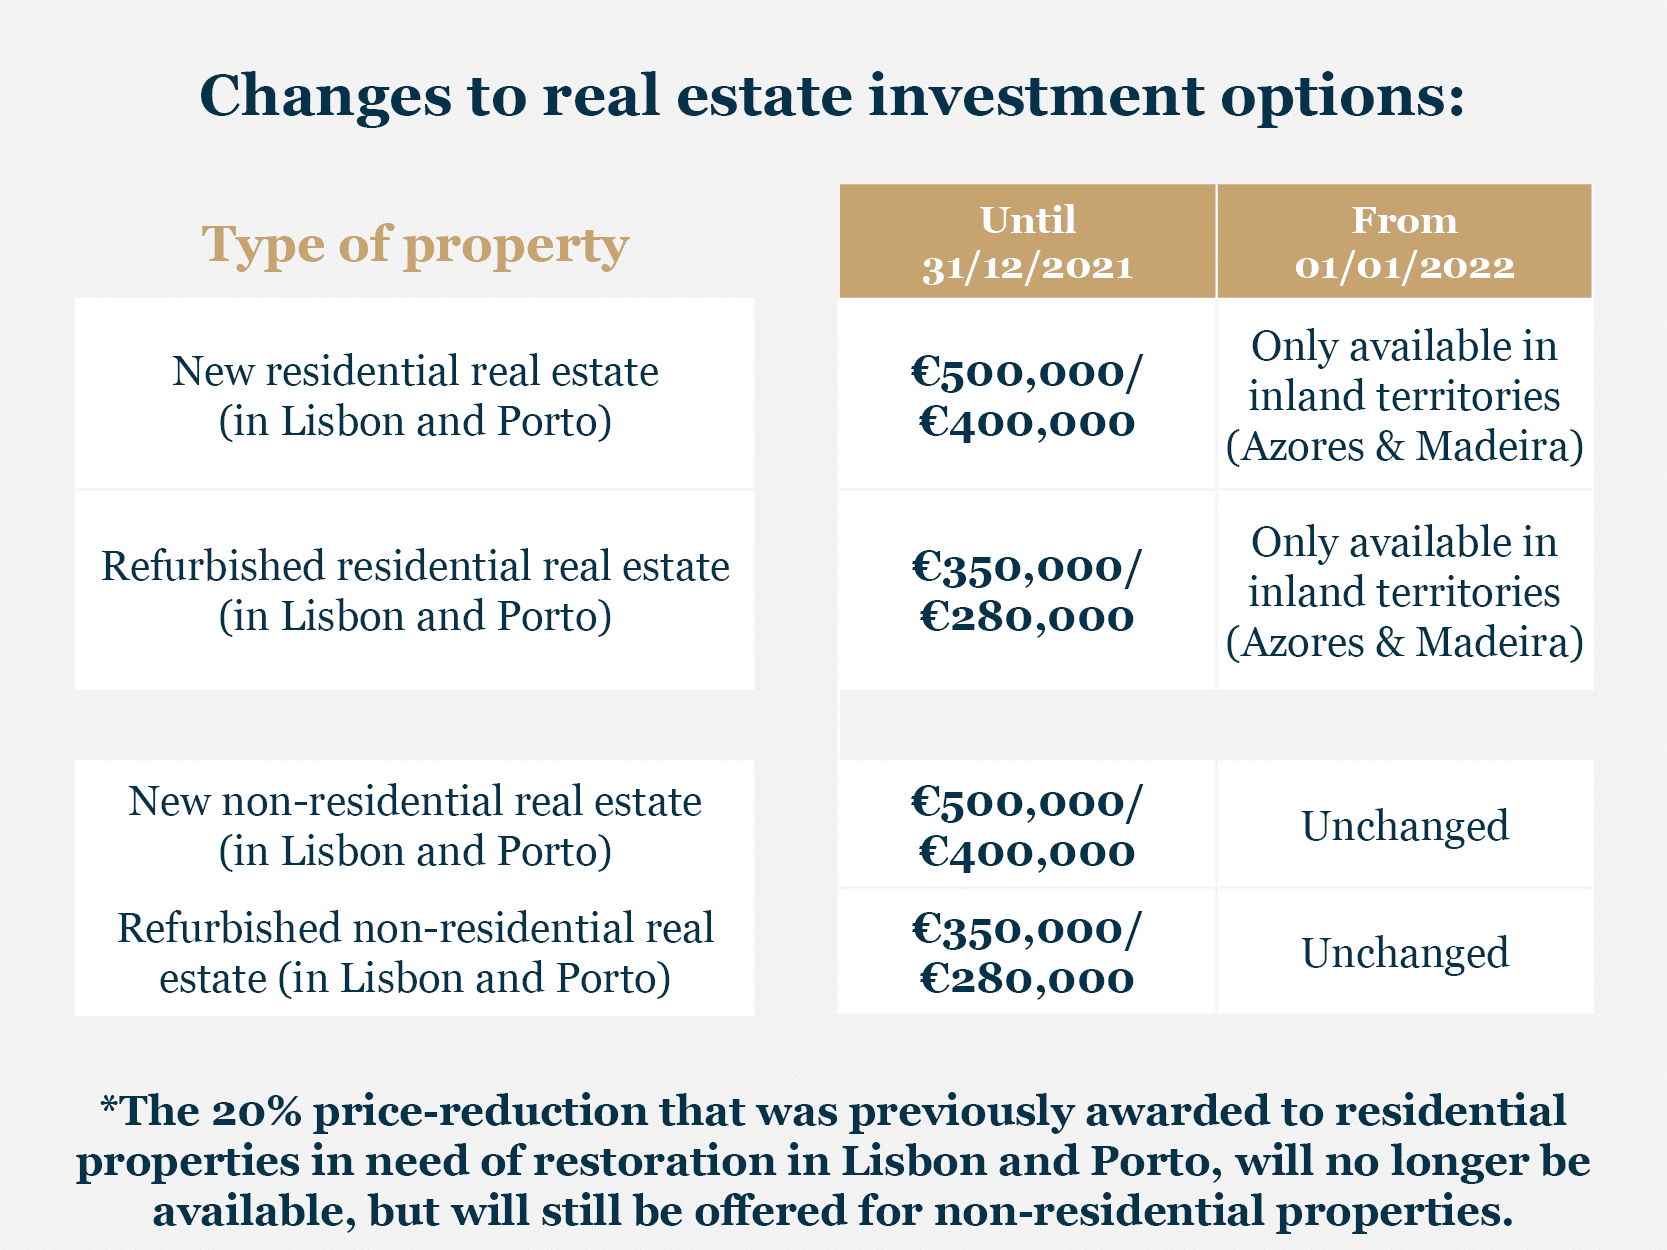 Changes to real estate investment options